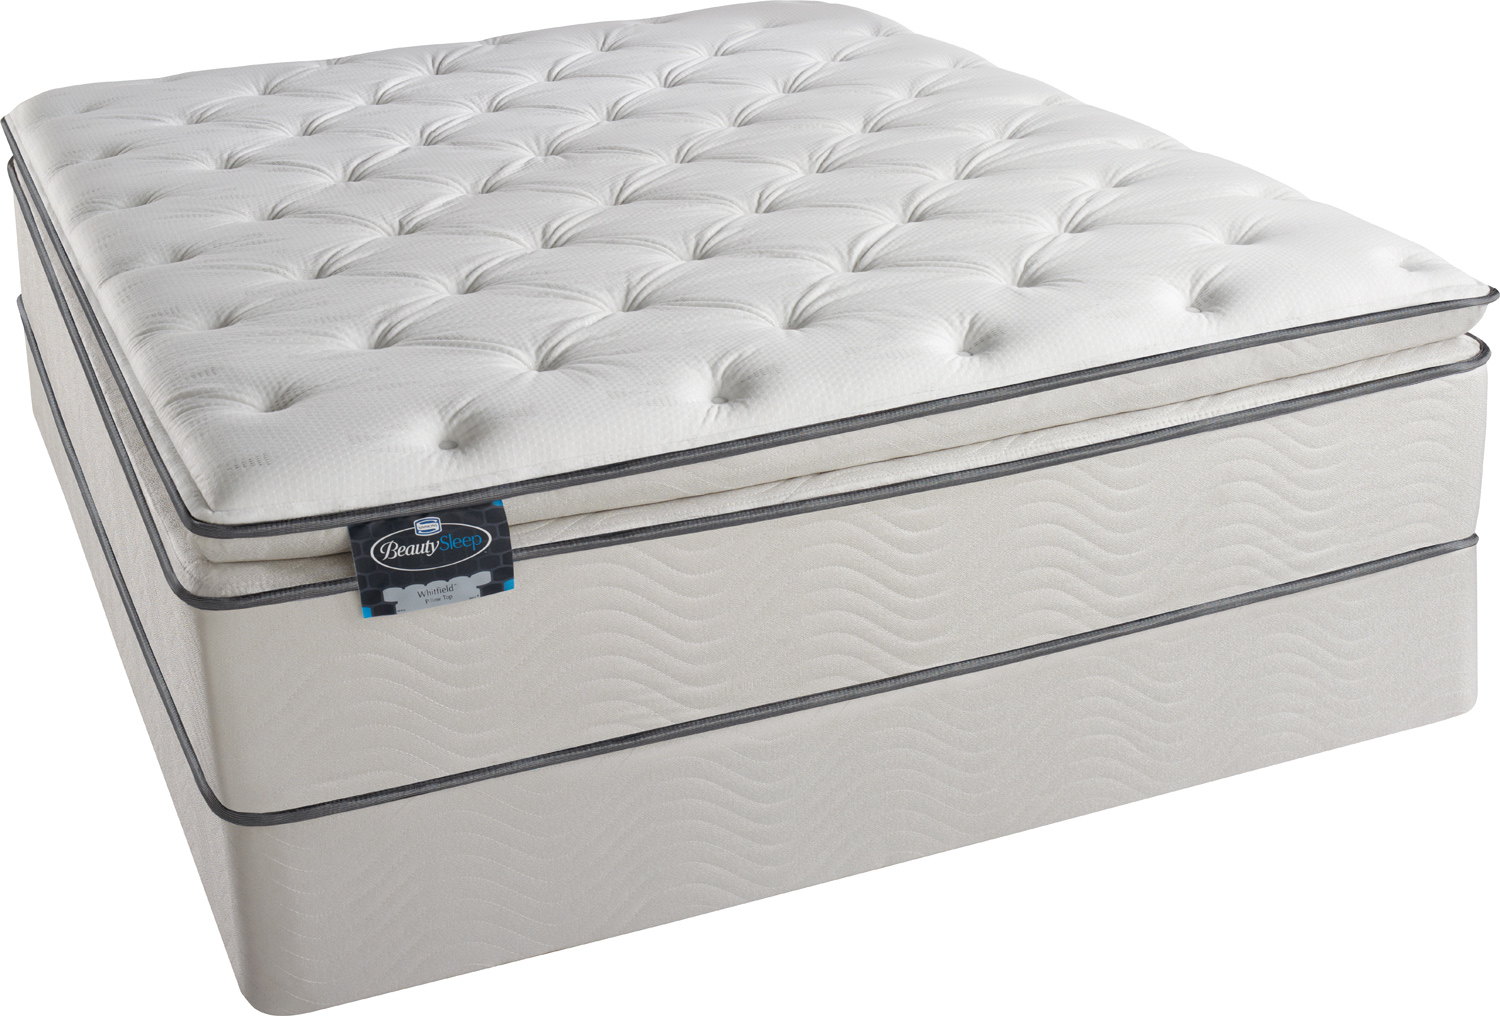 X Simmons Beautysleep Euro Pillow Top Foam Encased